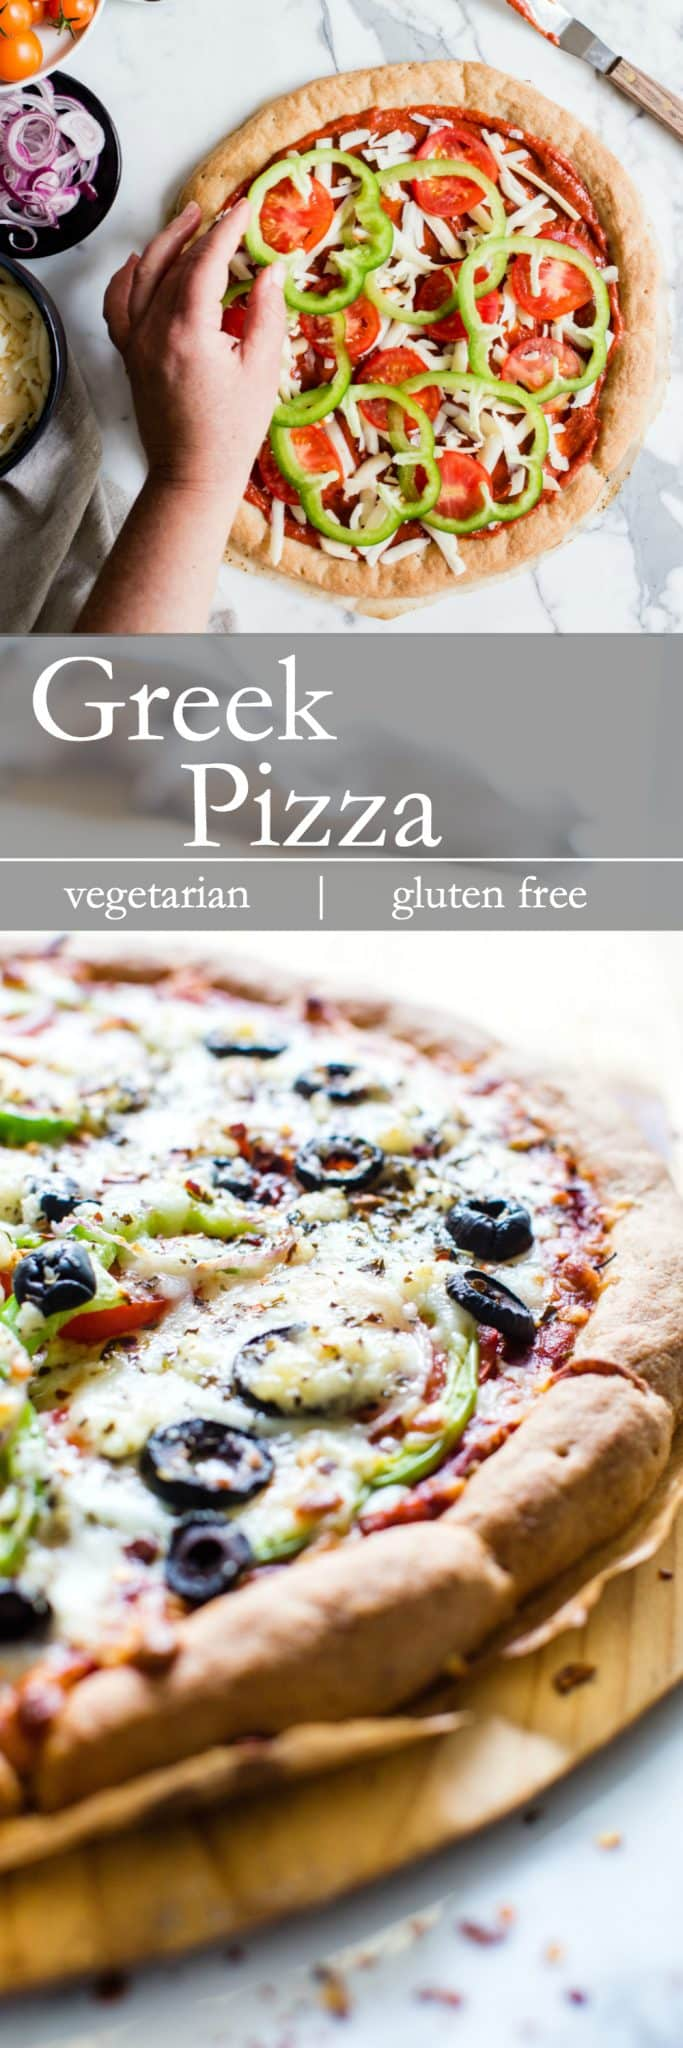 Simple ingredients create a fabulous homemade pizza. This Greek Pizza recipe is simple yet flavor packed! Make it for your next pizza night! #vegetarianPizza + #glutenfreePizza